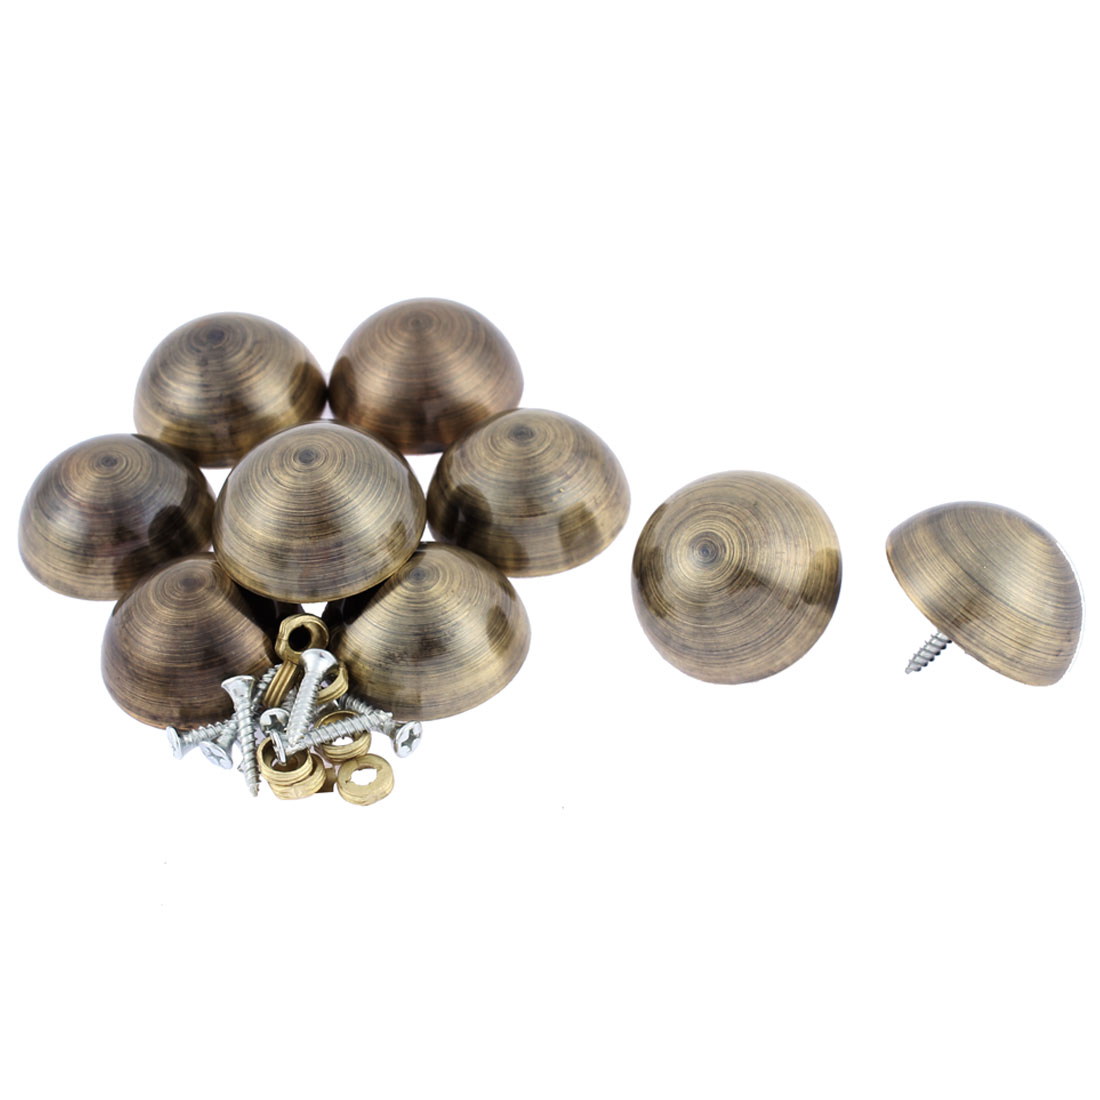 10pcs 36mm Dia Metal Semicircle Glass Mirror Screw Nail Decor Bronze Tone